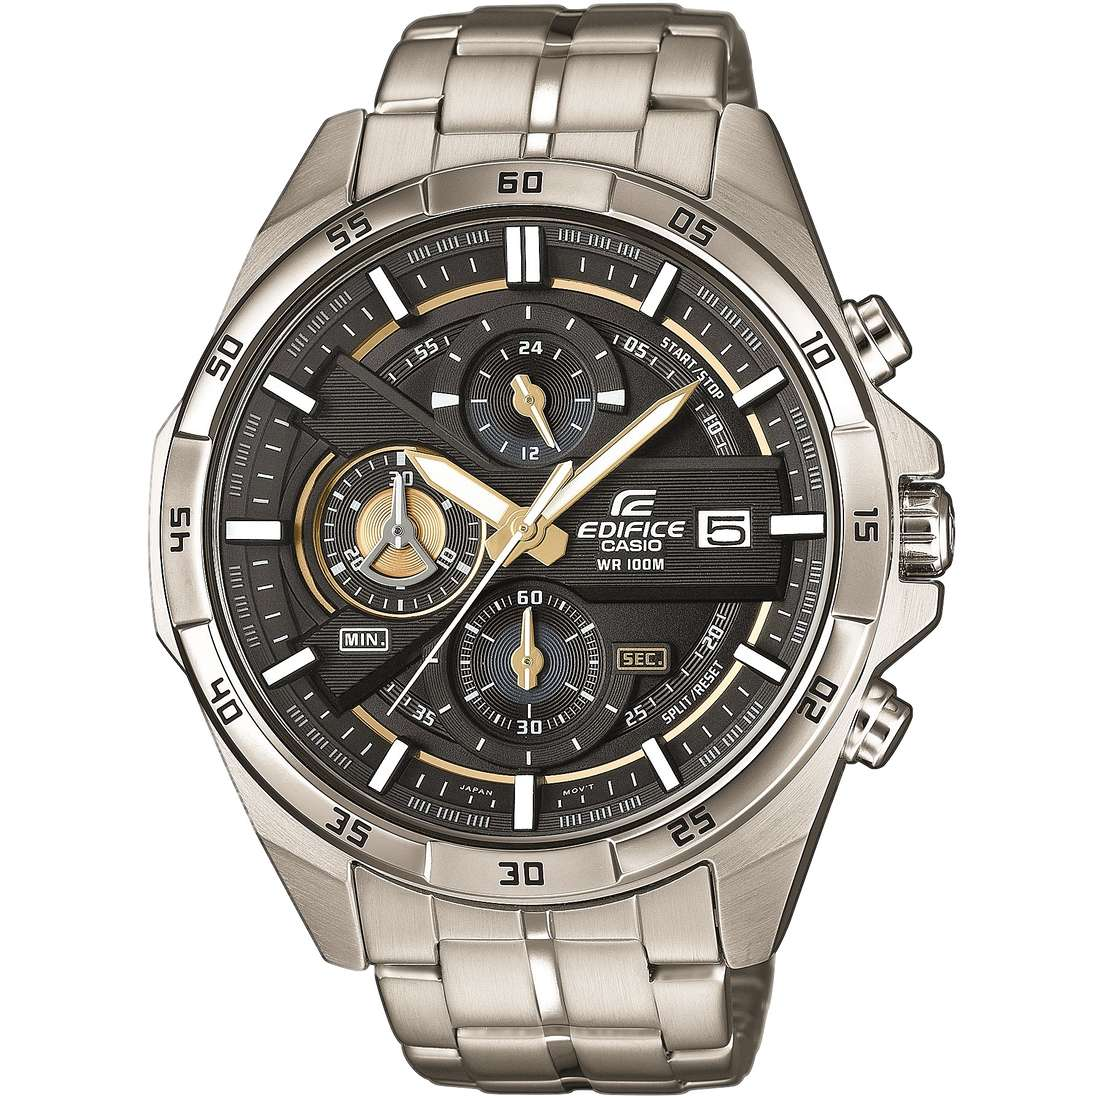 montre chronographe homme casio edifice efr 556d 1avuef chronographes casio. Black Bedroom Furniture Sets. Home Design Ideas